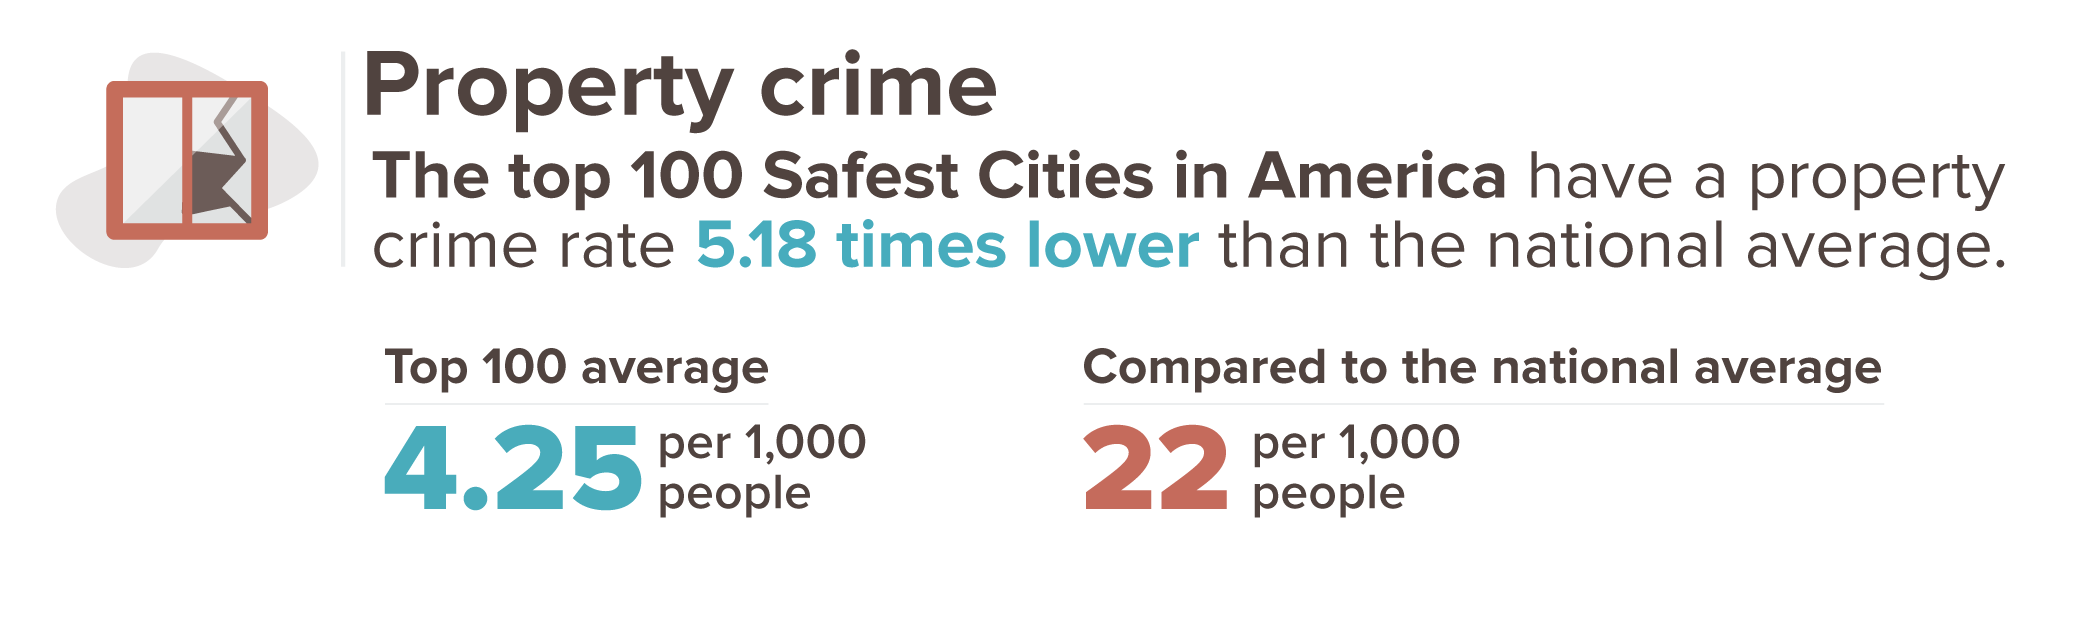 Graphic showing that property crime is 5.18 times lower in the safest cities, compared to the national average of 22 incidents per 1,000 people.